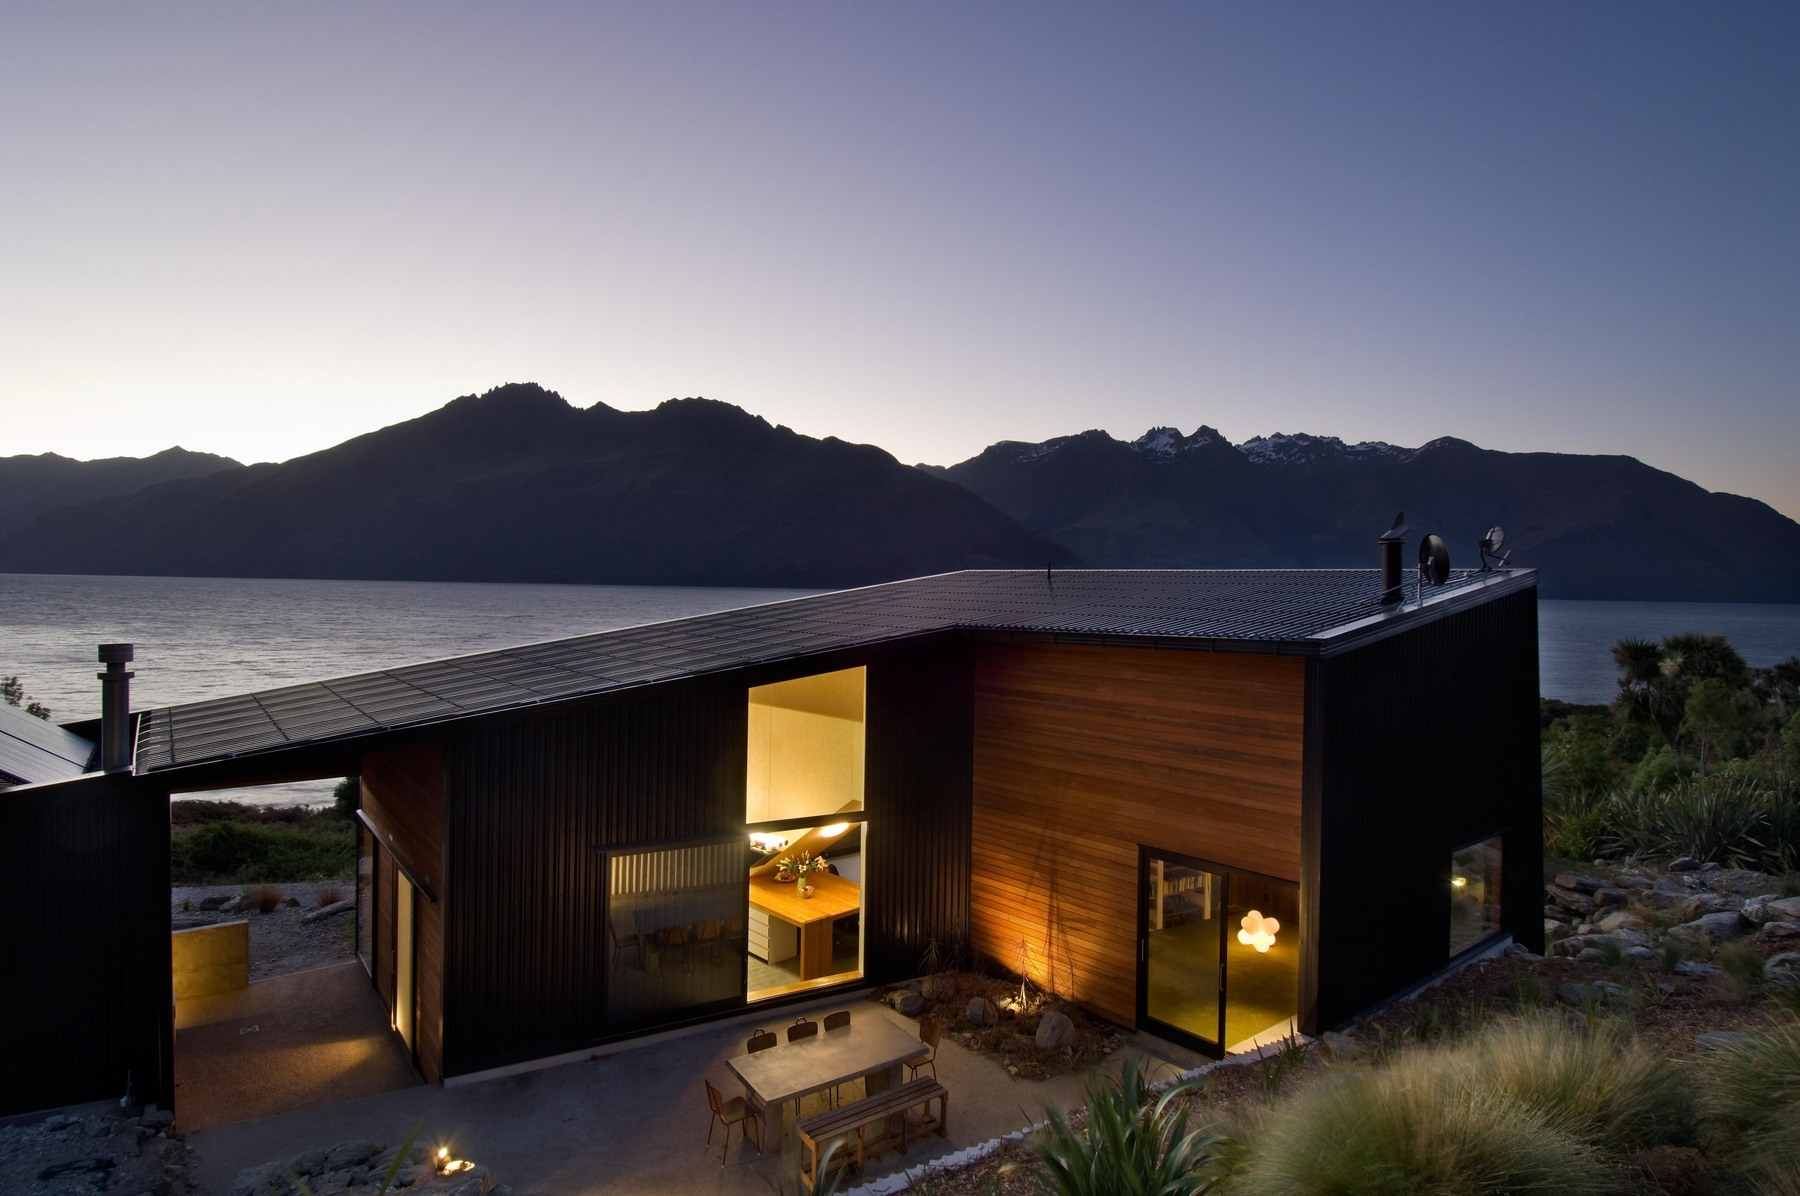 This sculptural house nestles into its dramatic landscape.